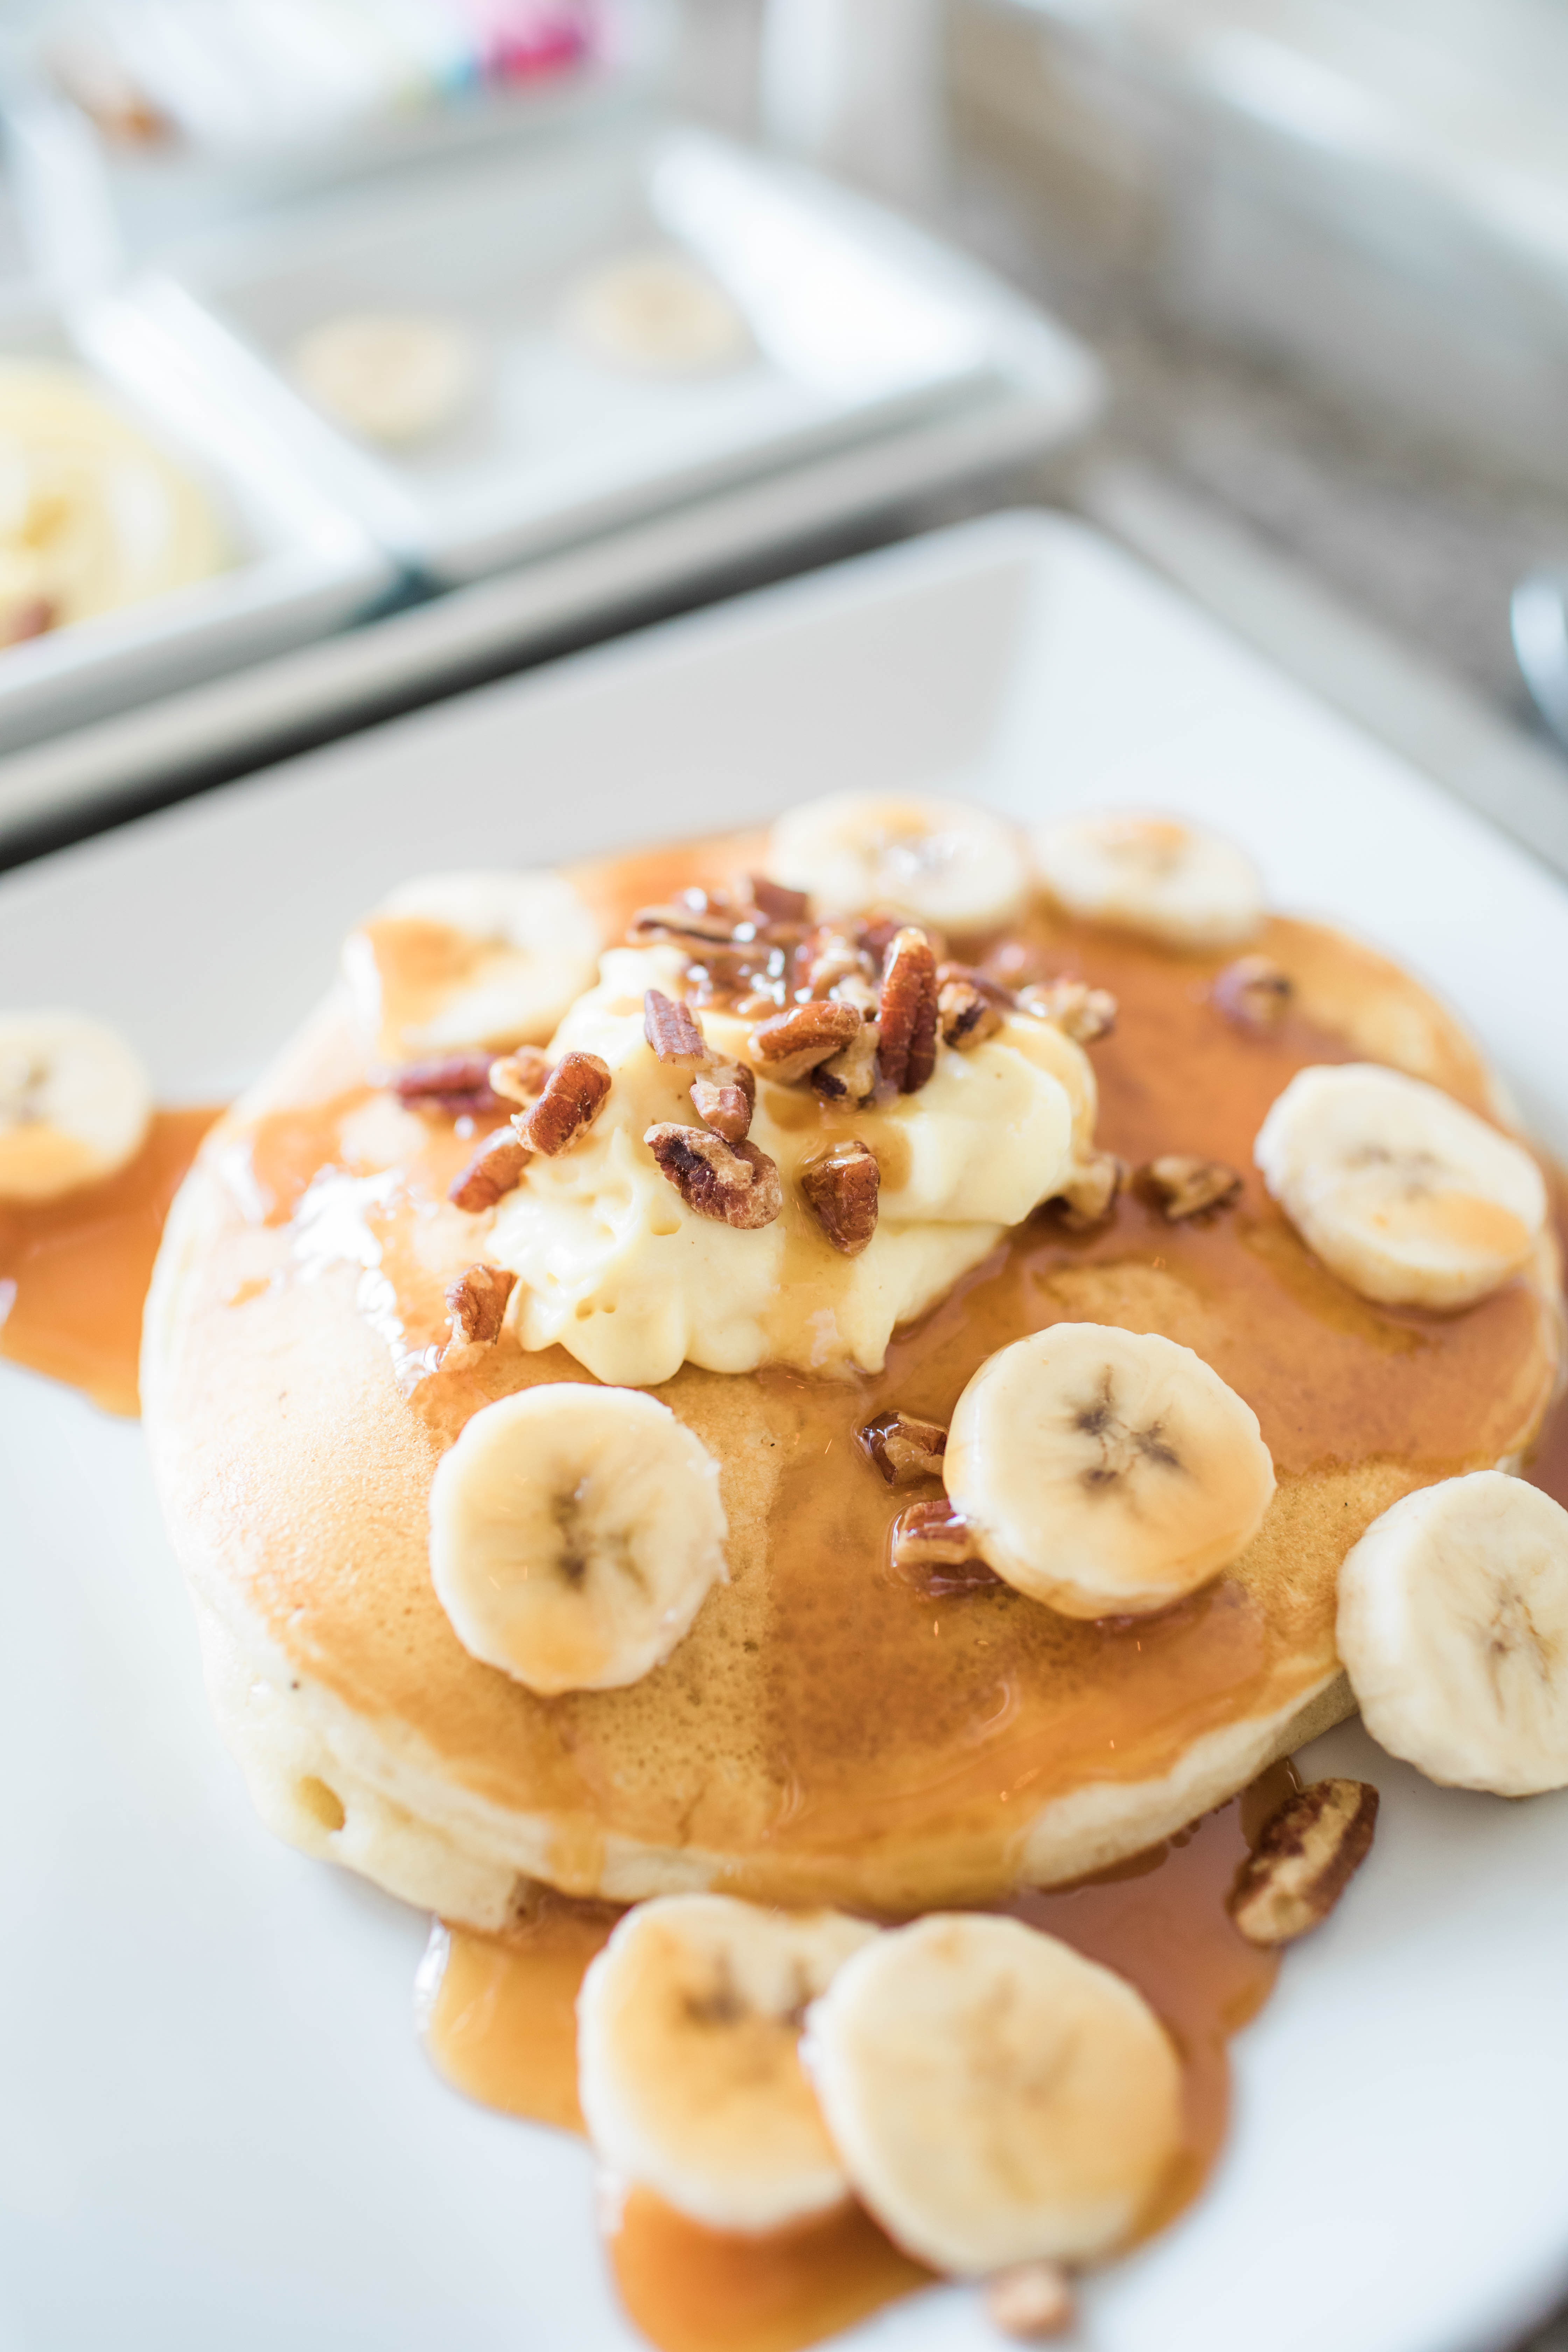 Pancakes covered in delicious toppings